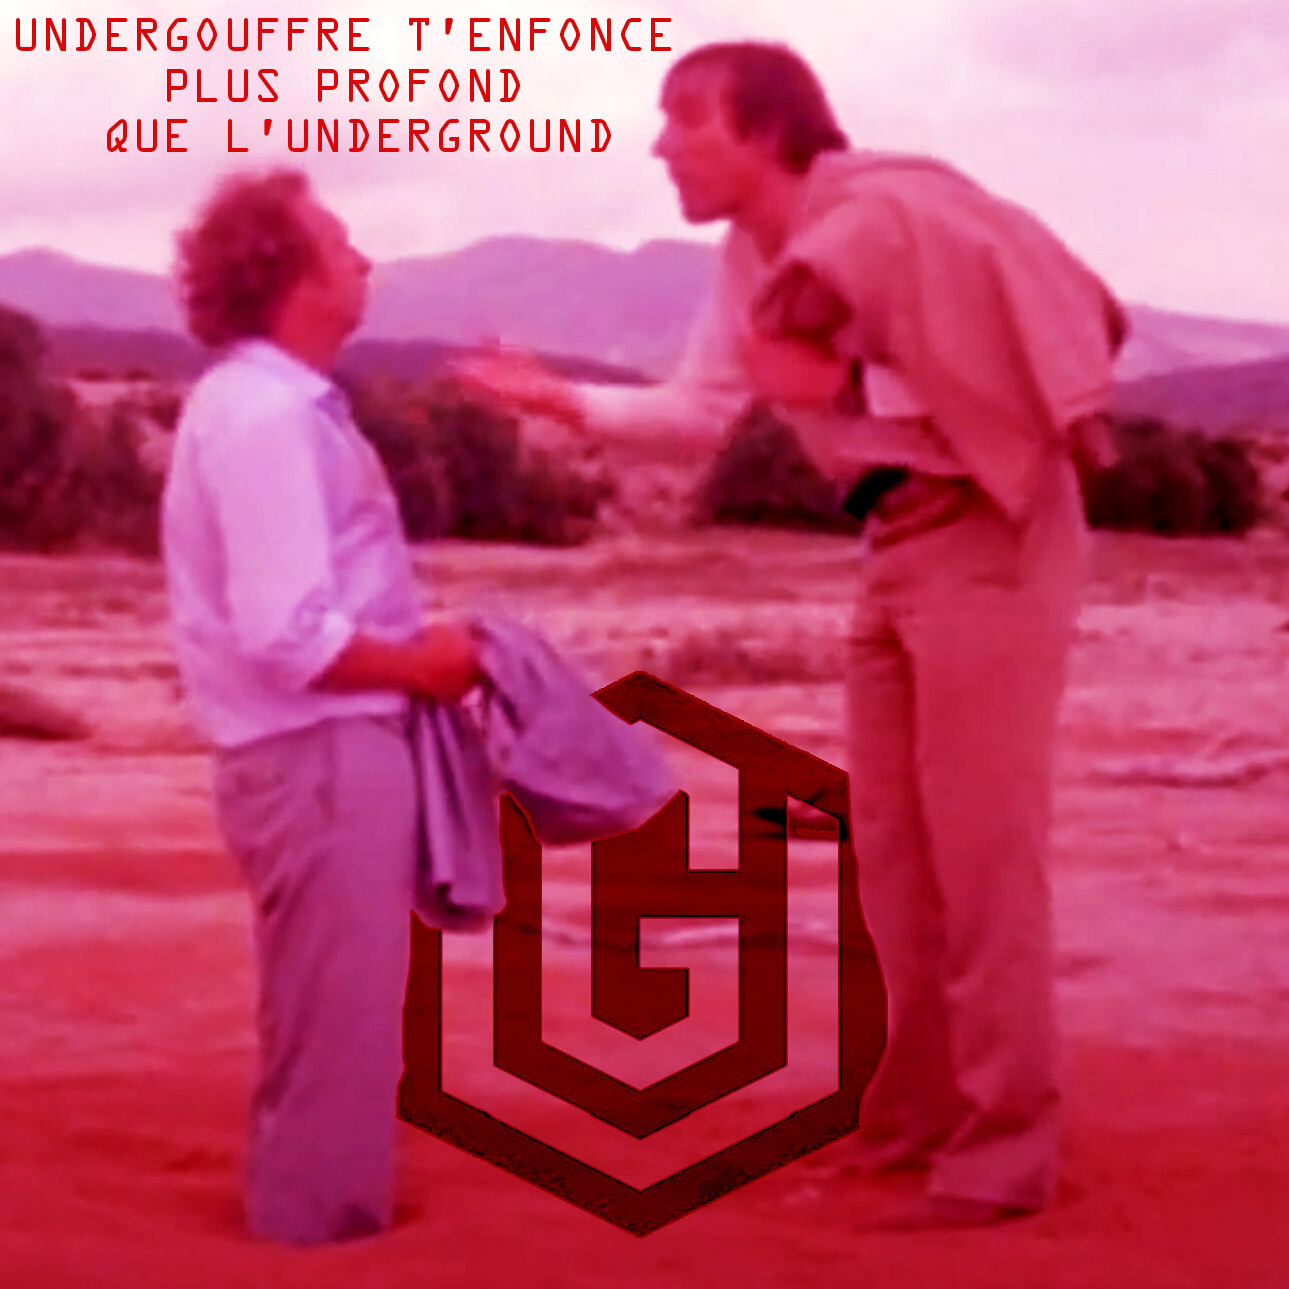 UNDERGOUFFRE S6E7 hosted by Pierre Richard